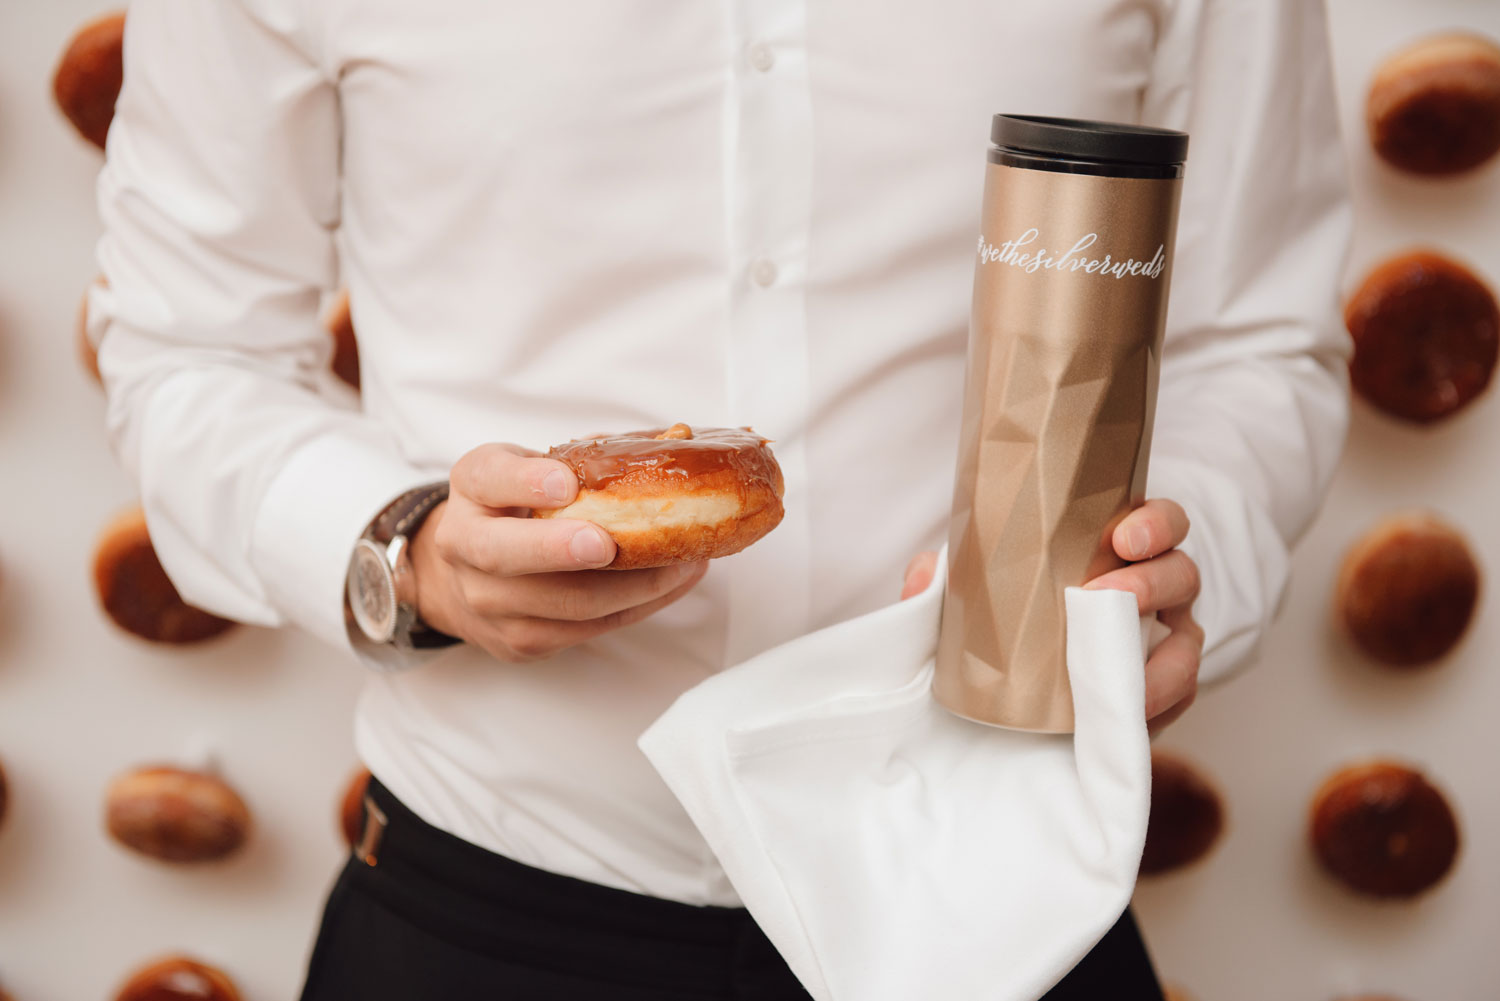 National donut day wedding guest with donut and coffee thermos wedding ideas after party doughnut